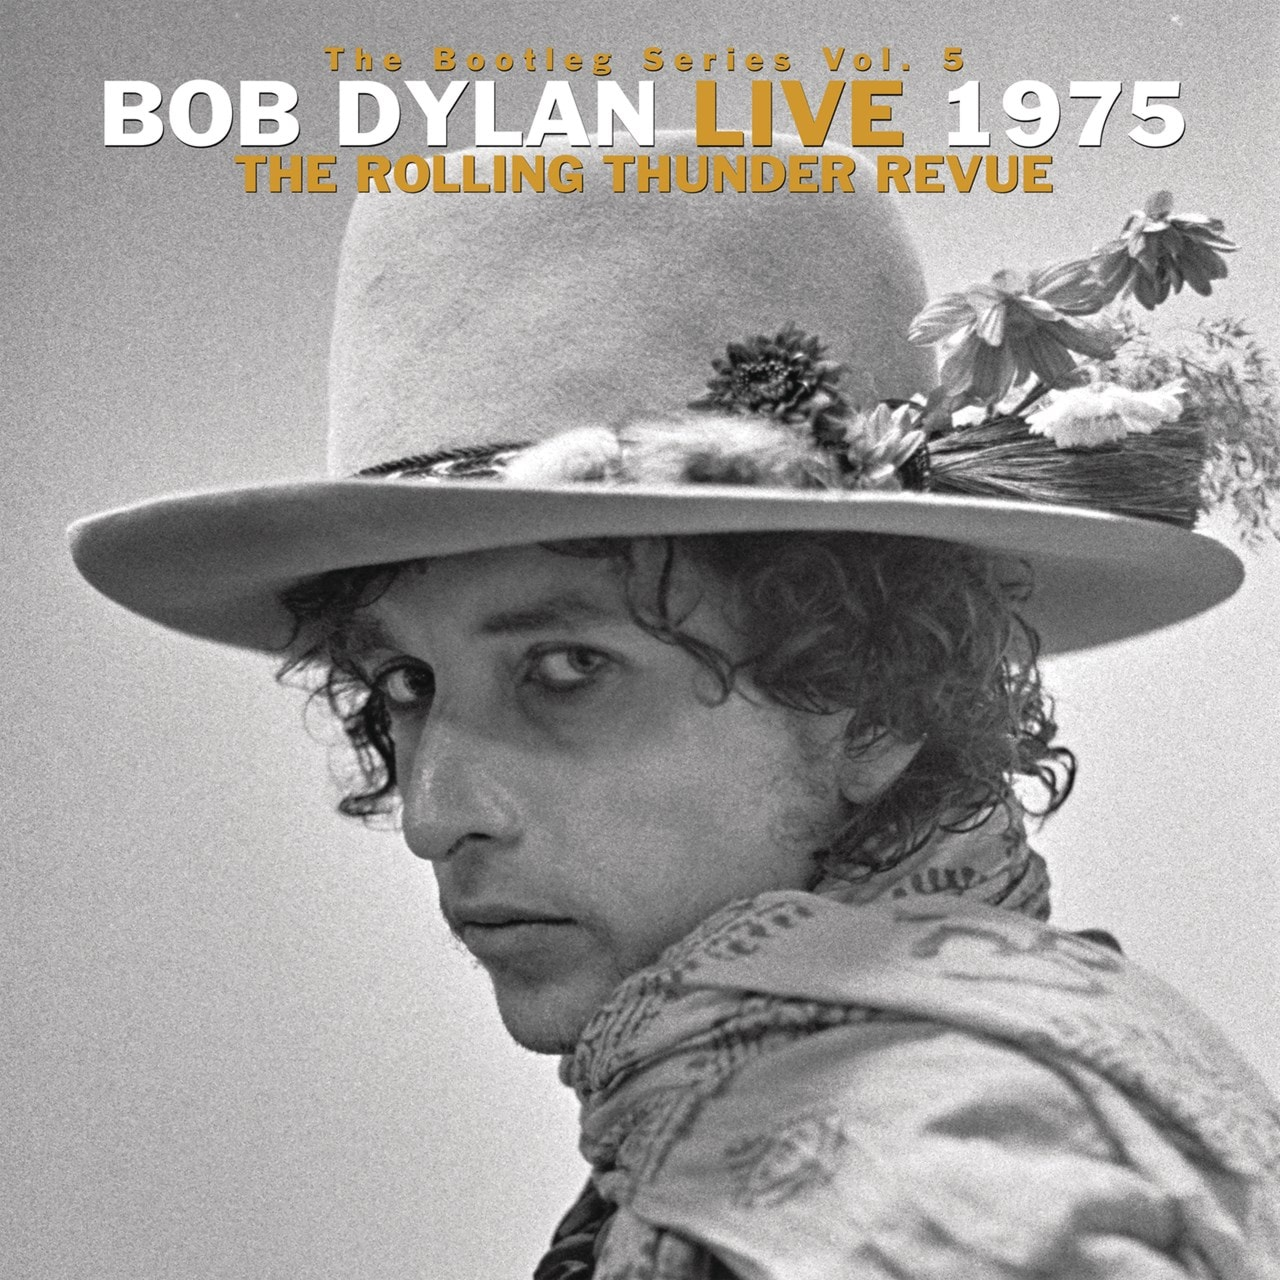 Live 1975: The Rolling Thunder Revue - 1